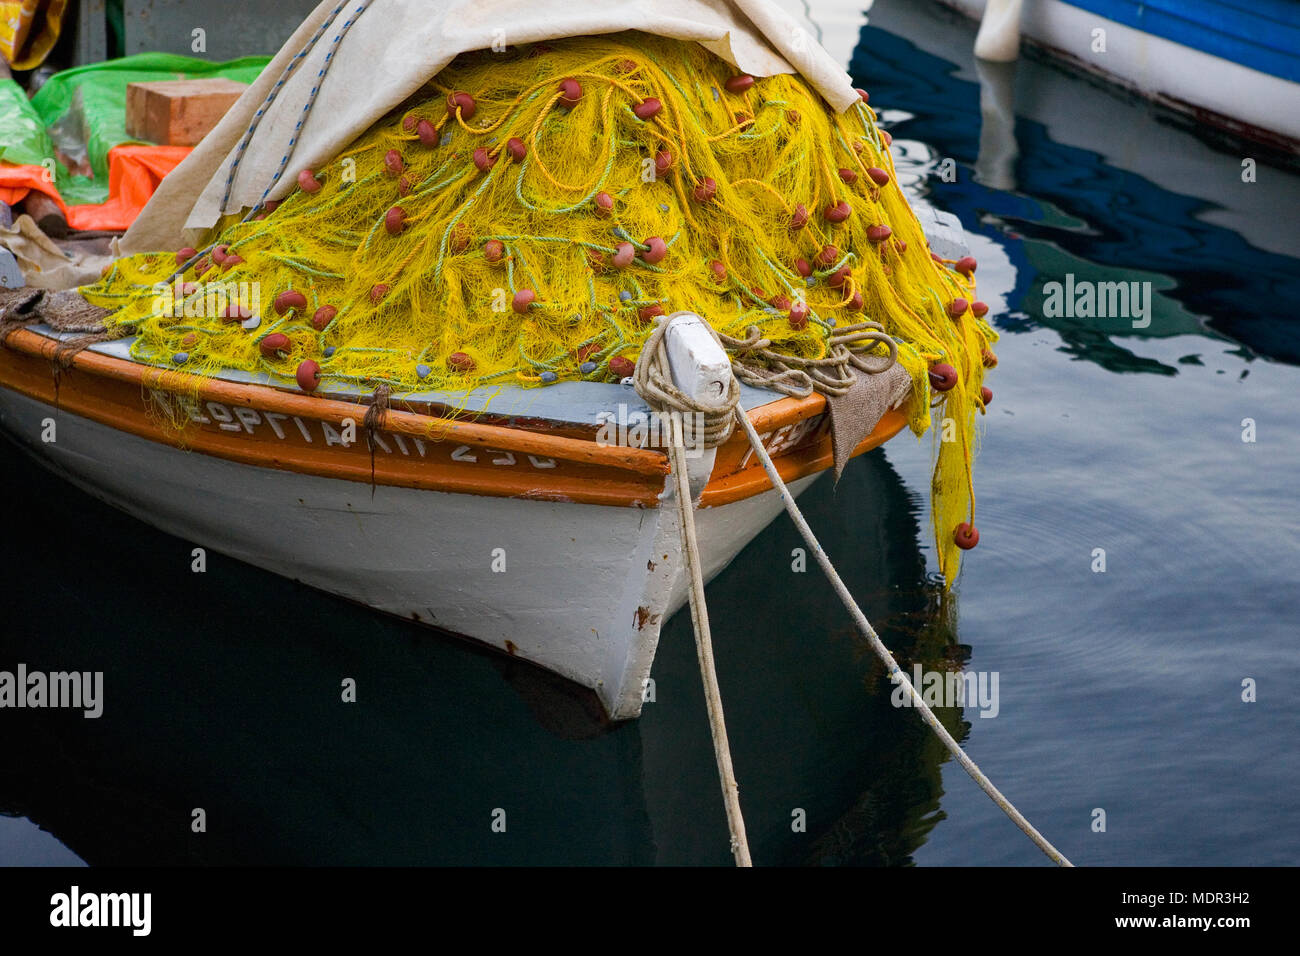 Fishing boat loaded with nets, Gaios harbour, Paxos, Greece - Stock Image